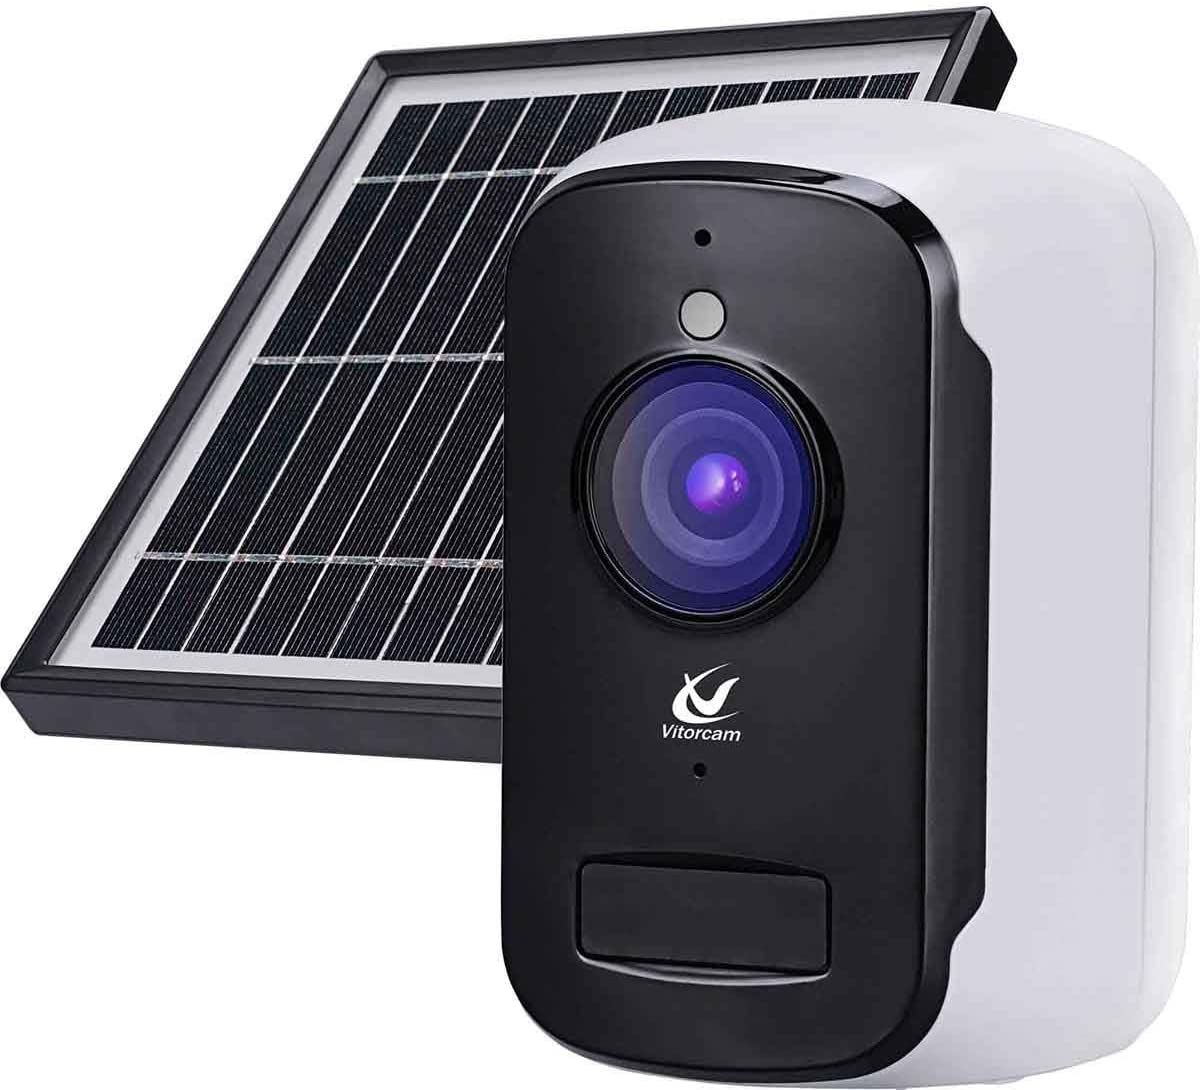 Wireless Rechargeable Battery Powered with Solar Panel WiFi IP Surveillance Home Security Camera, Night Vision, Human Motion Detection, 2-Way Audio, IP65 Waterproof A2+